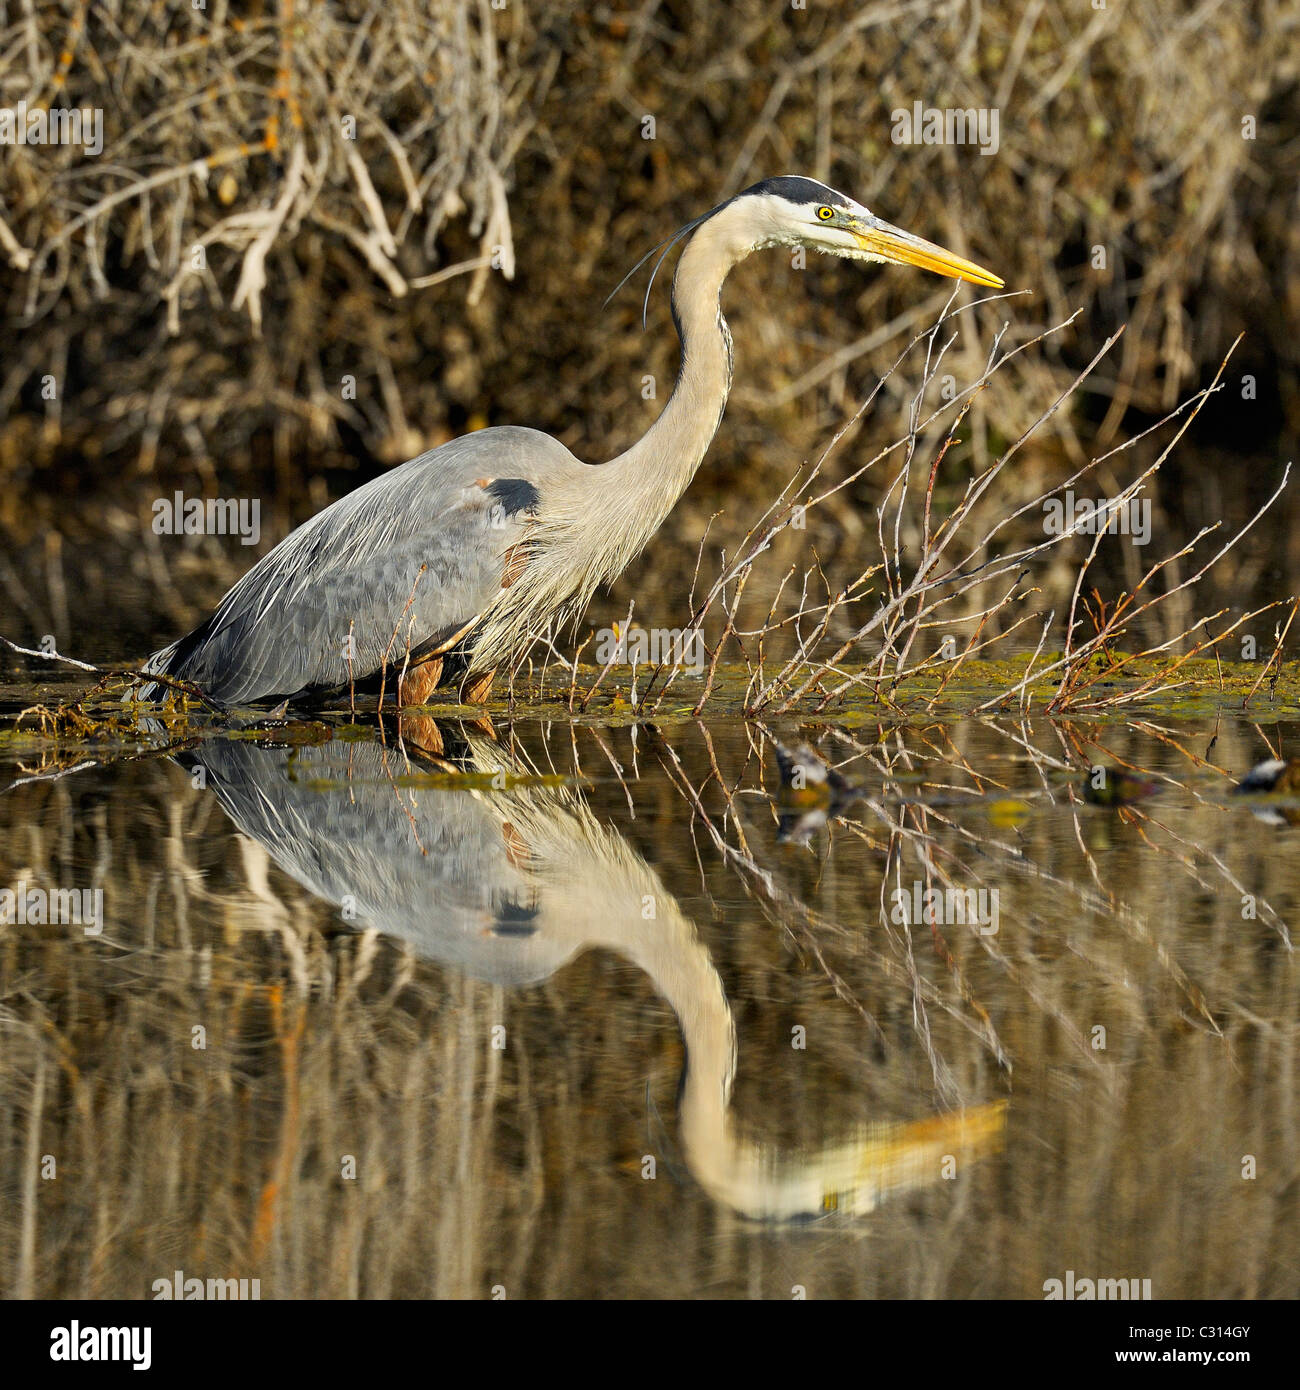 A great blue heron reflected at sunrise in a beaver pond - Stock Image